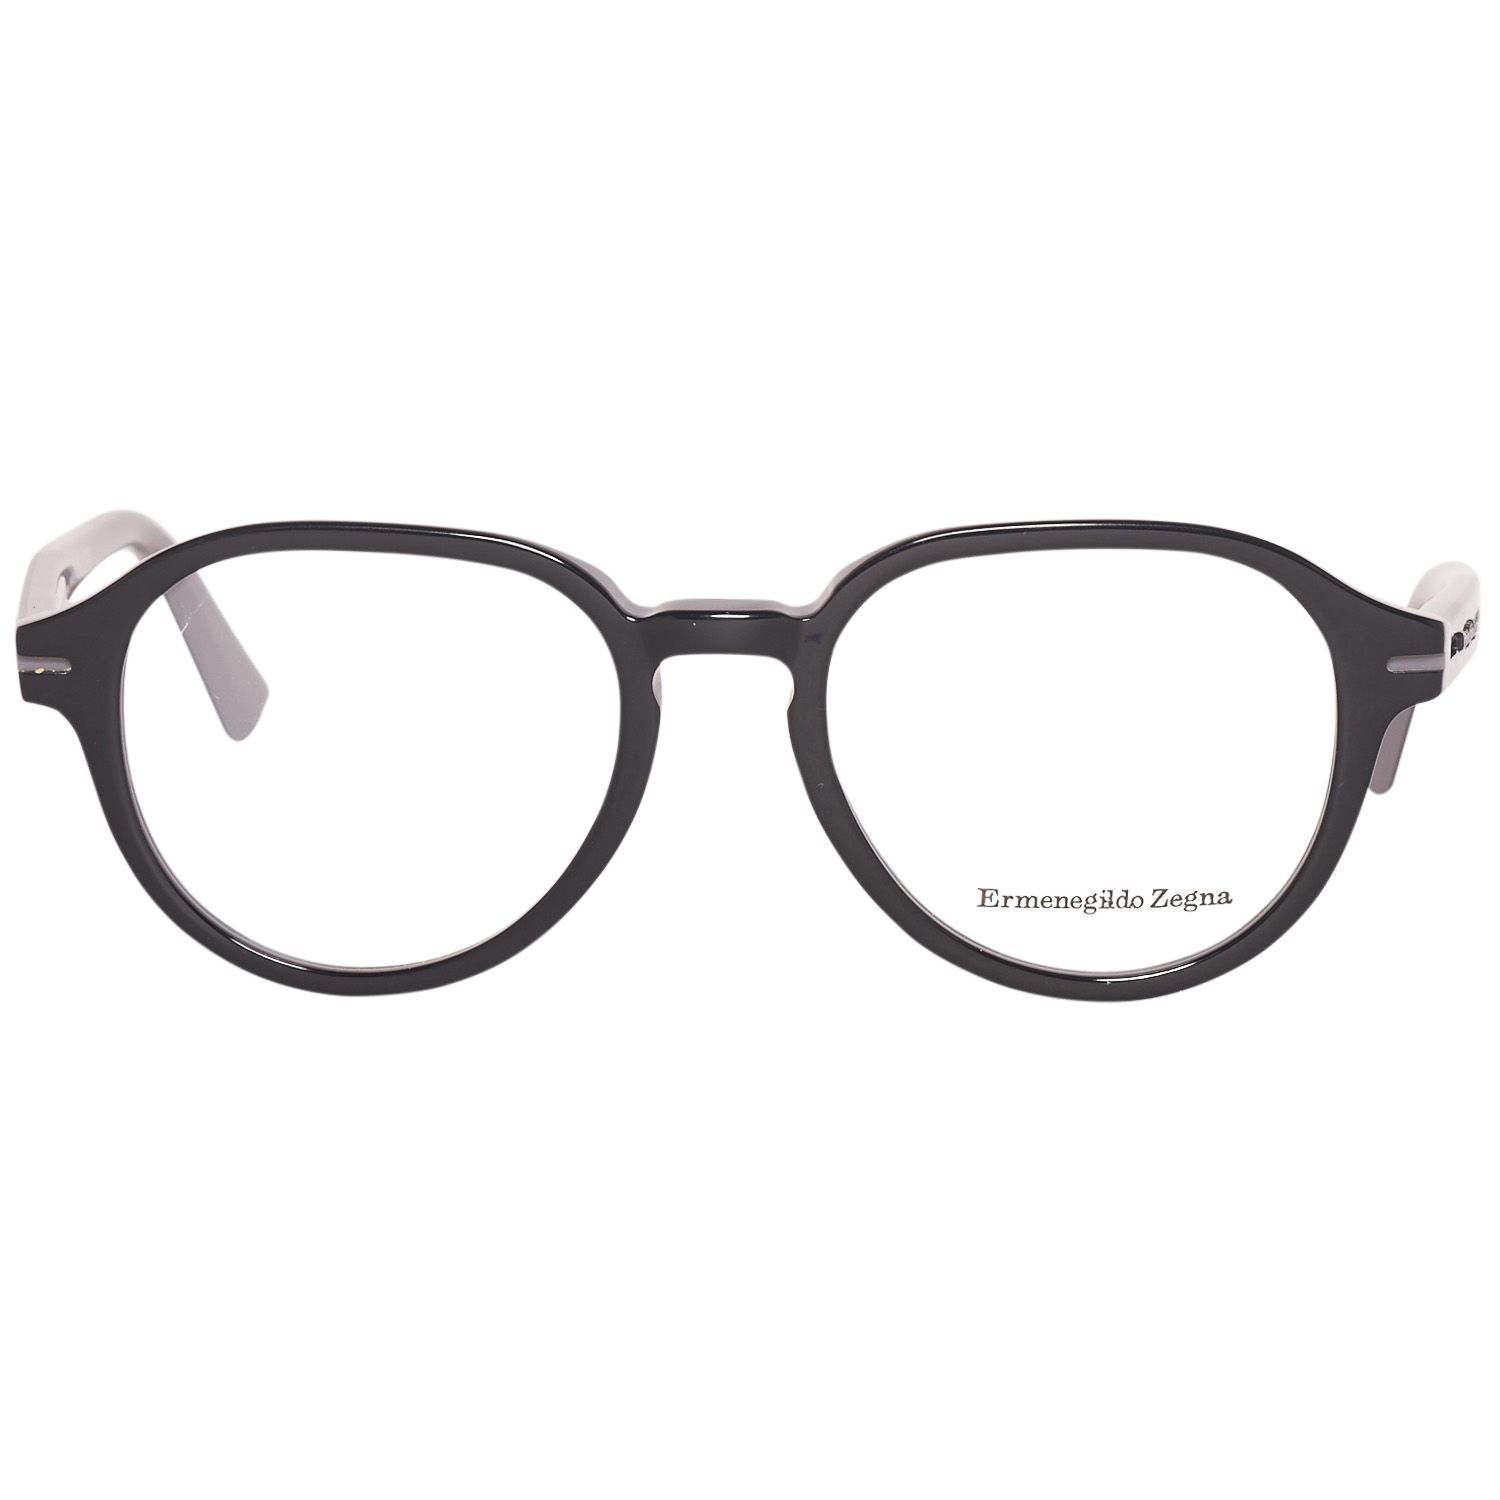 Ermenegildo Zegna Optical Frame EZ5043 005 49 Men Black